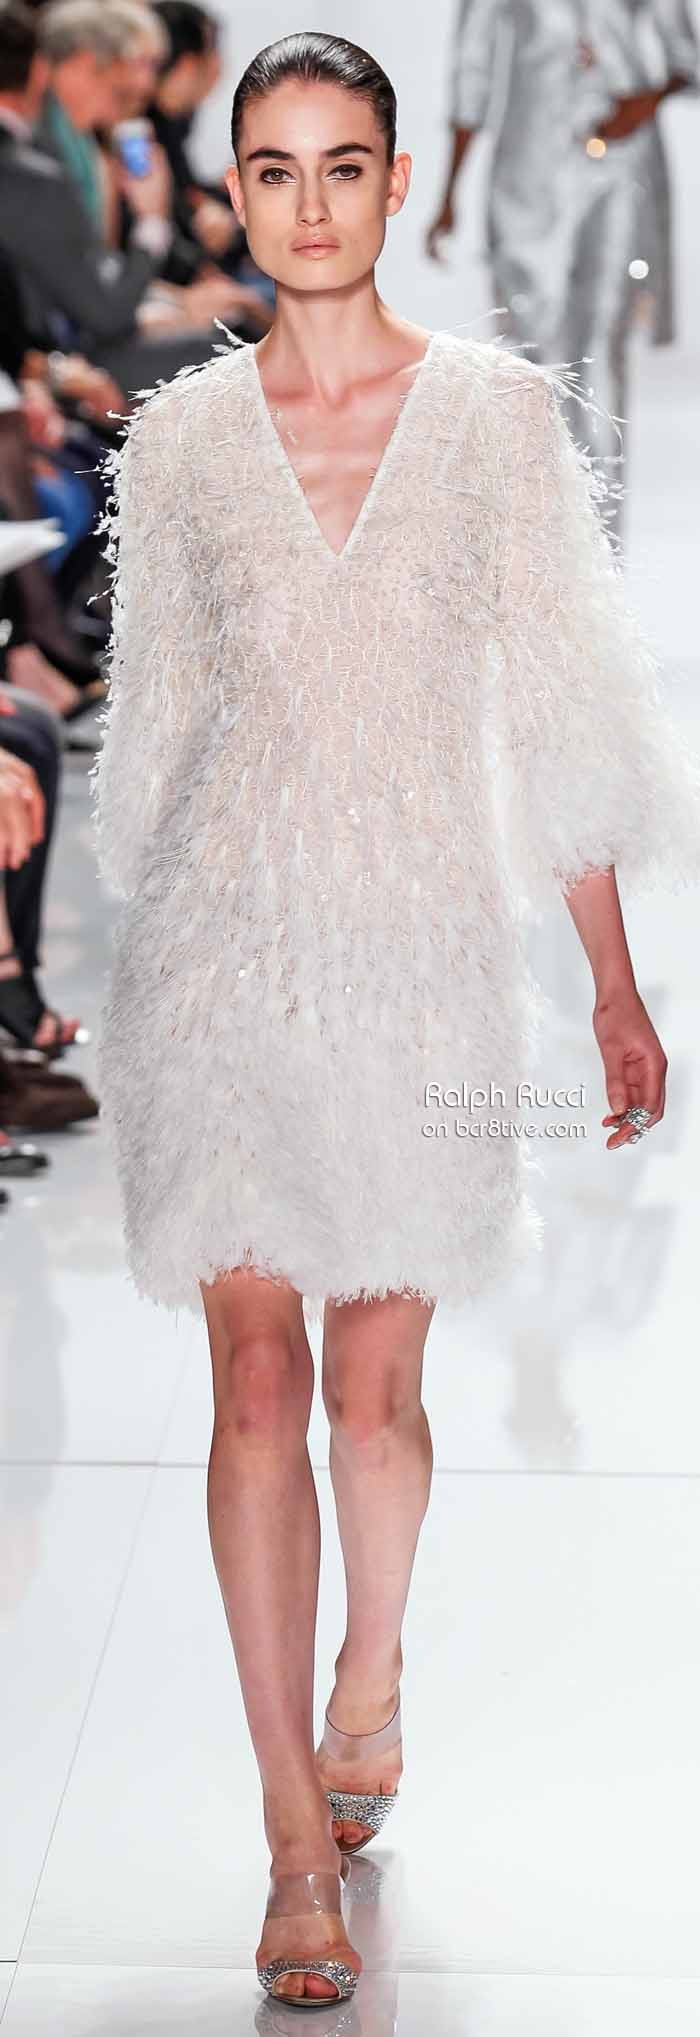 Ralph Rucci Spring 2014 #NYFW - Feathery Texture Dress